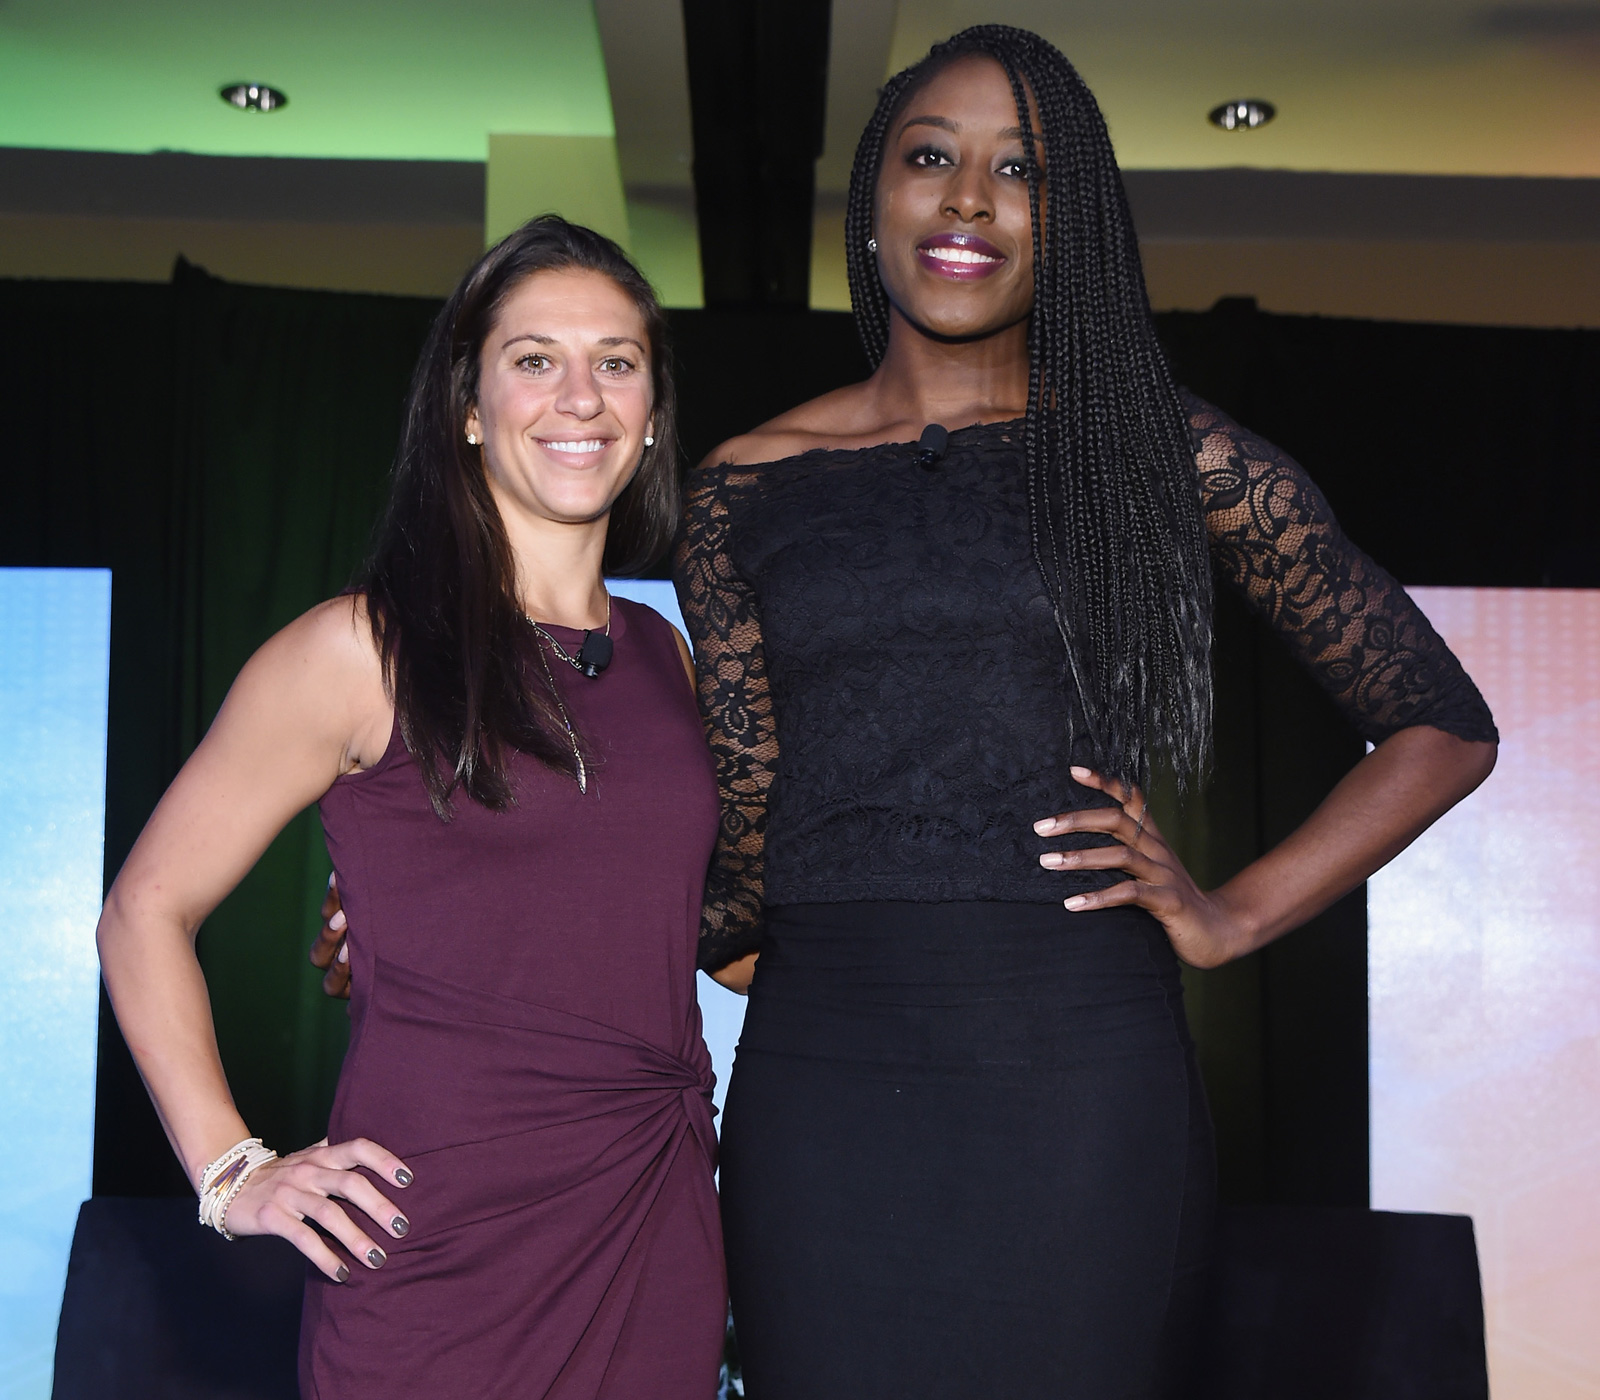 U.S. women's national team star Carli Lloyd and WNBA star Chiney Ogwumike